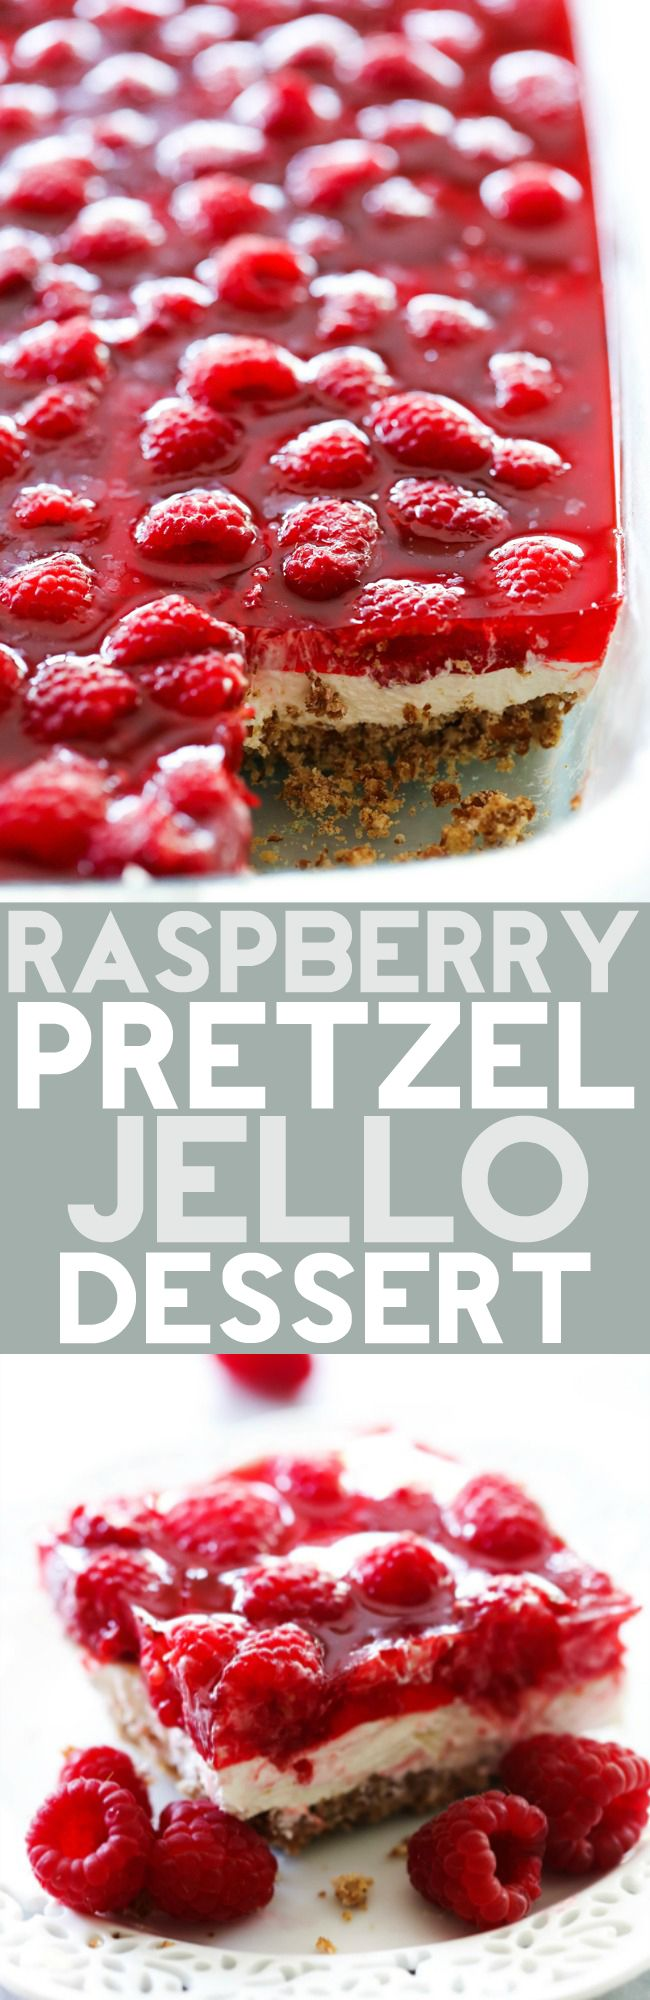 This Raspberry Pretzel Jello Dessert is the perfect combo of sweet and salty and a hint of tart. The three layers combine wonderfully for a crunchy, creamy and fruity treat that will have have everyone coming back for more!